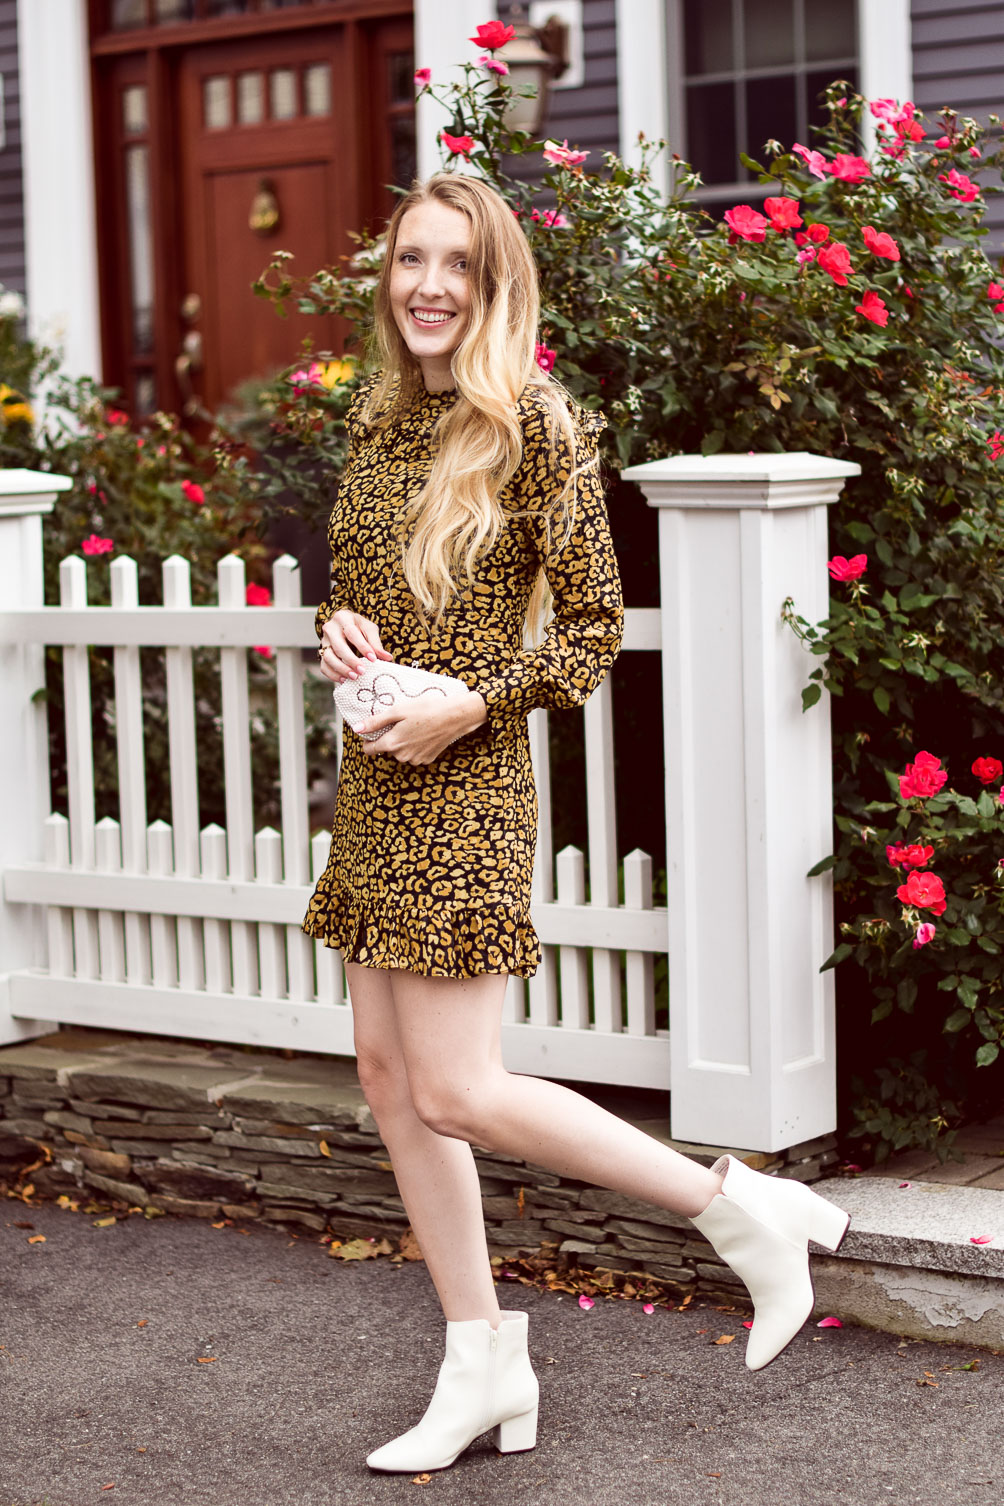 styling a cute fall outfit with this leopard mini dress and white ankle boots